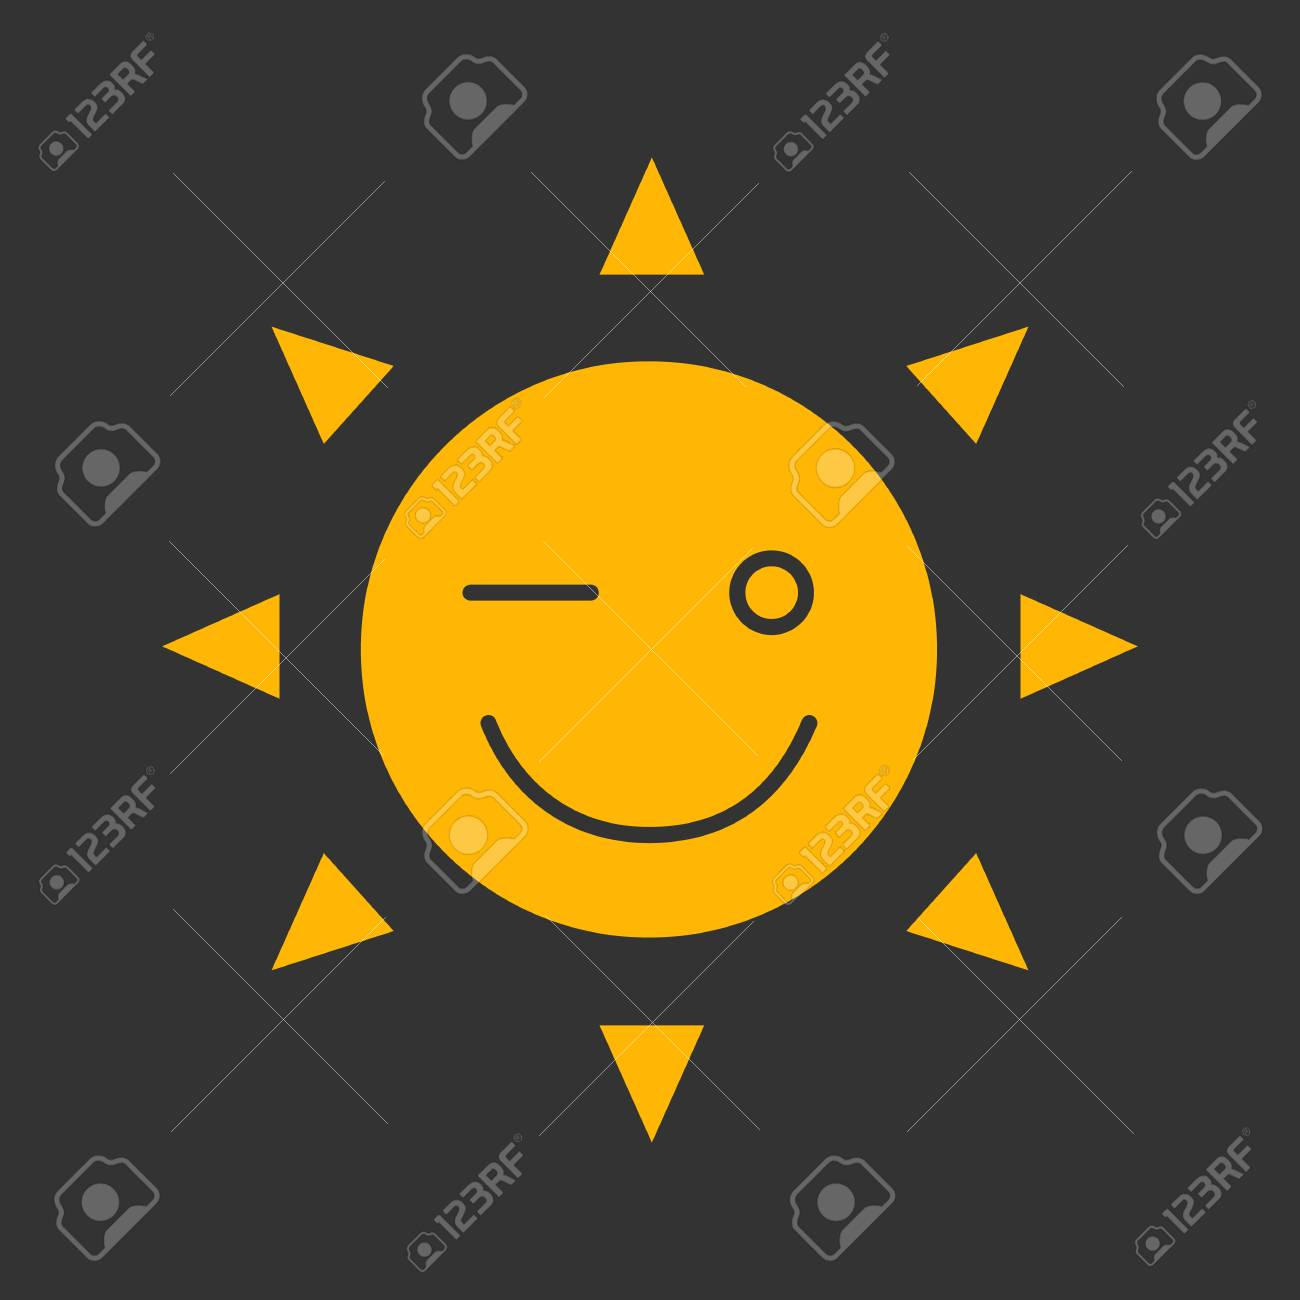 Winking Sun Smile Glyph Color Icon Good Mood Emoticon Happy